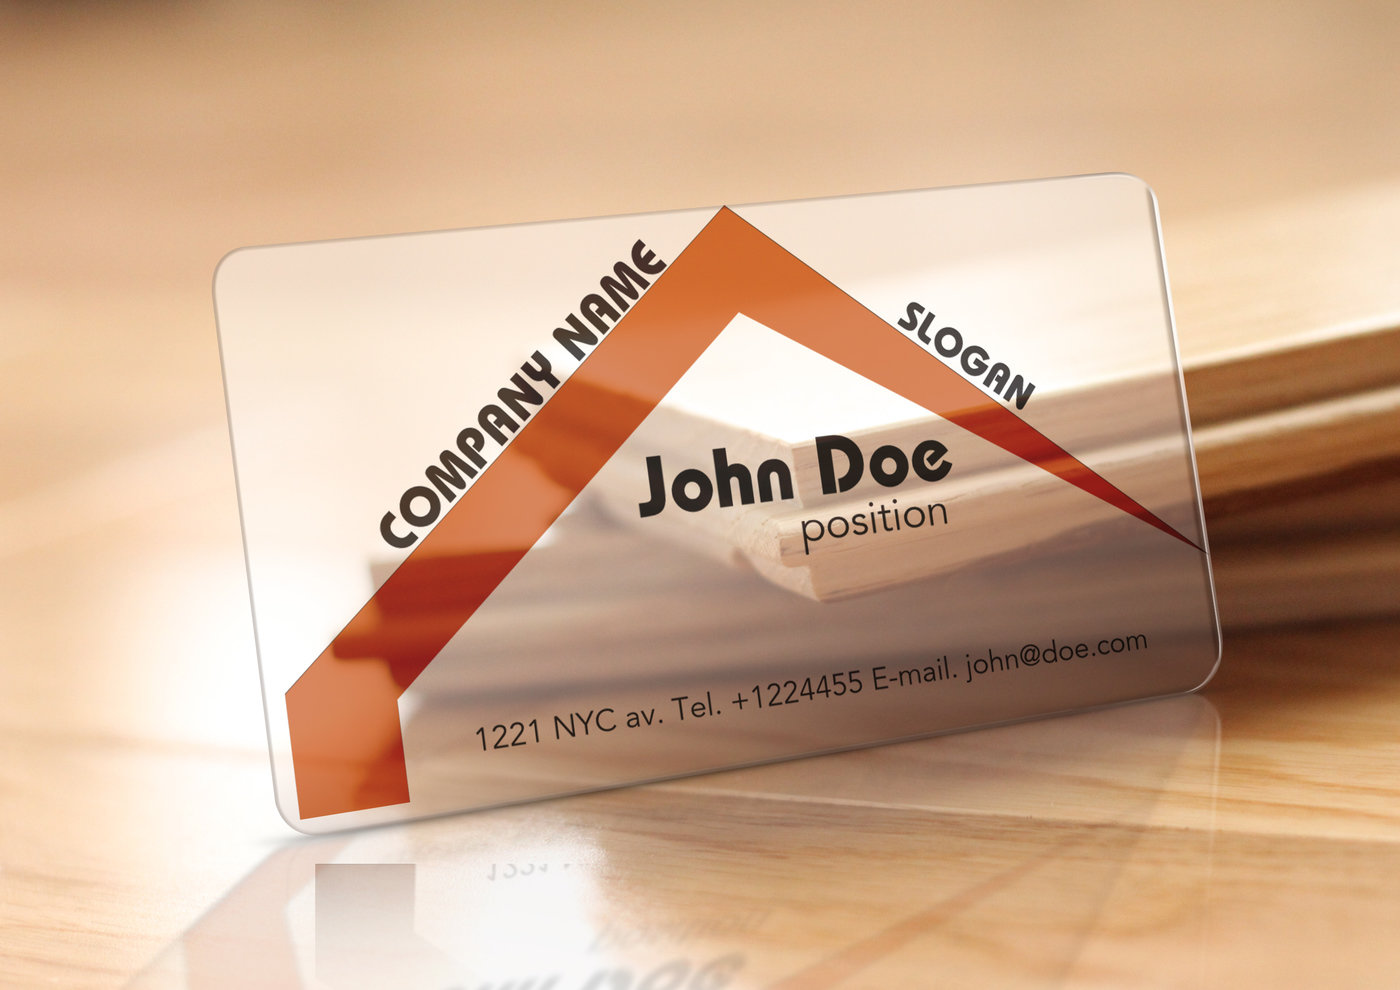 Translucent Plastic Realtor Business Card (Free Template) by Borce ...